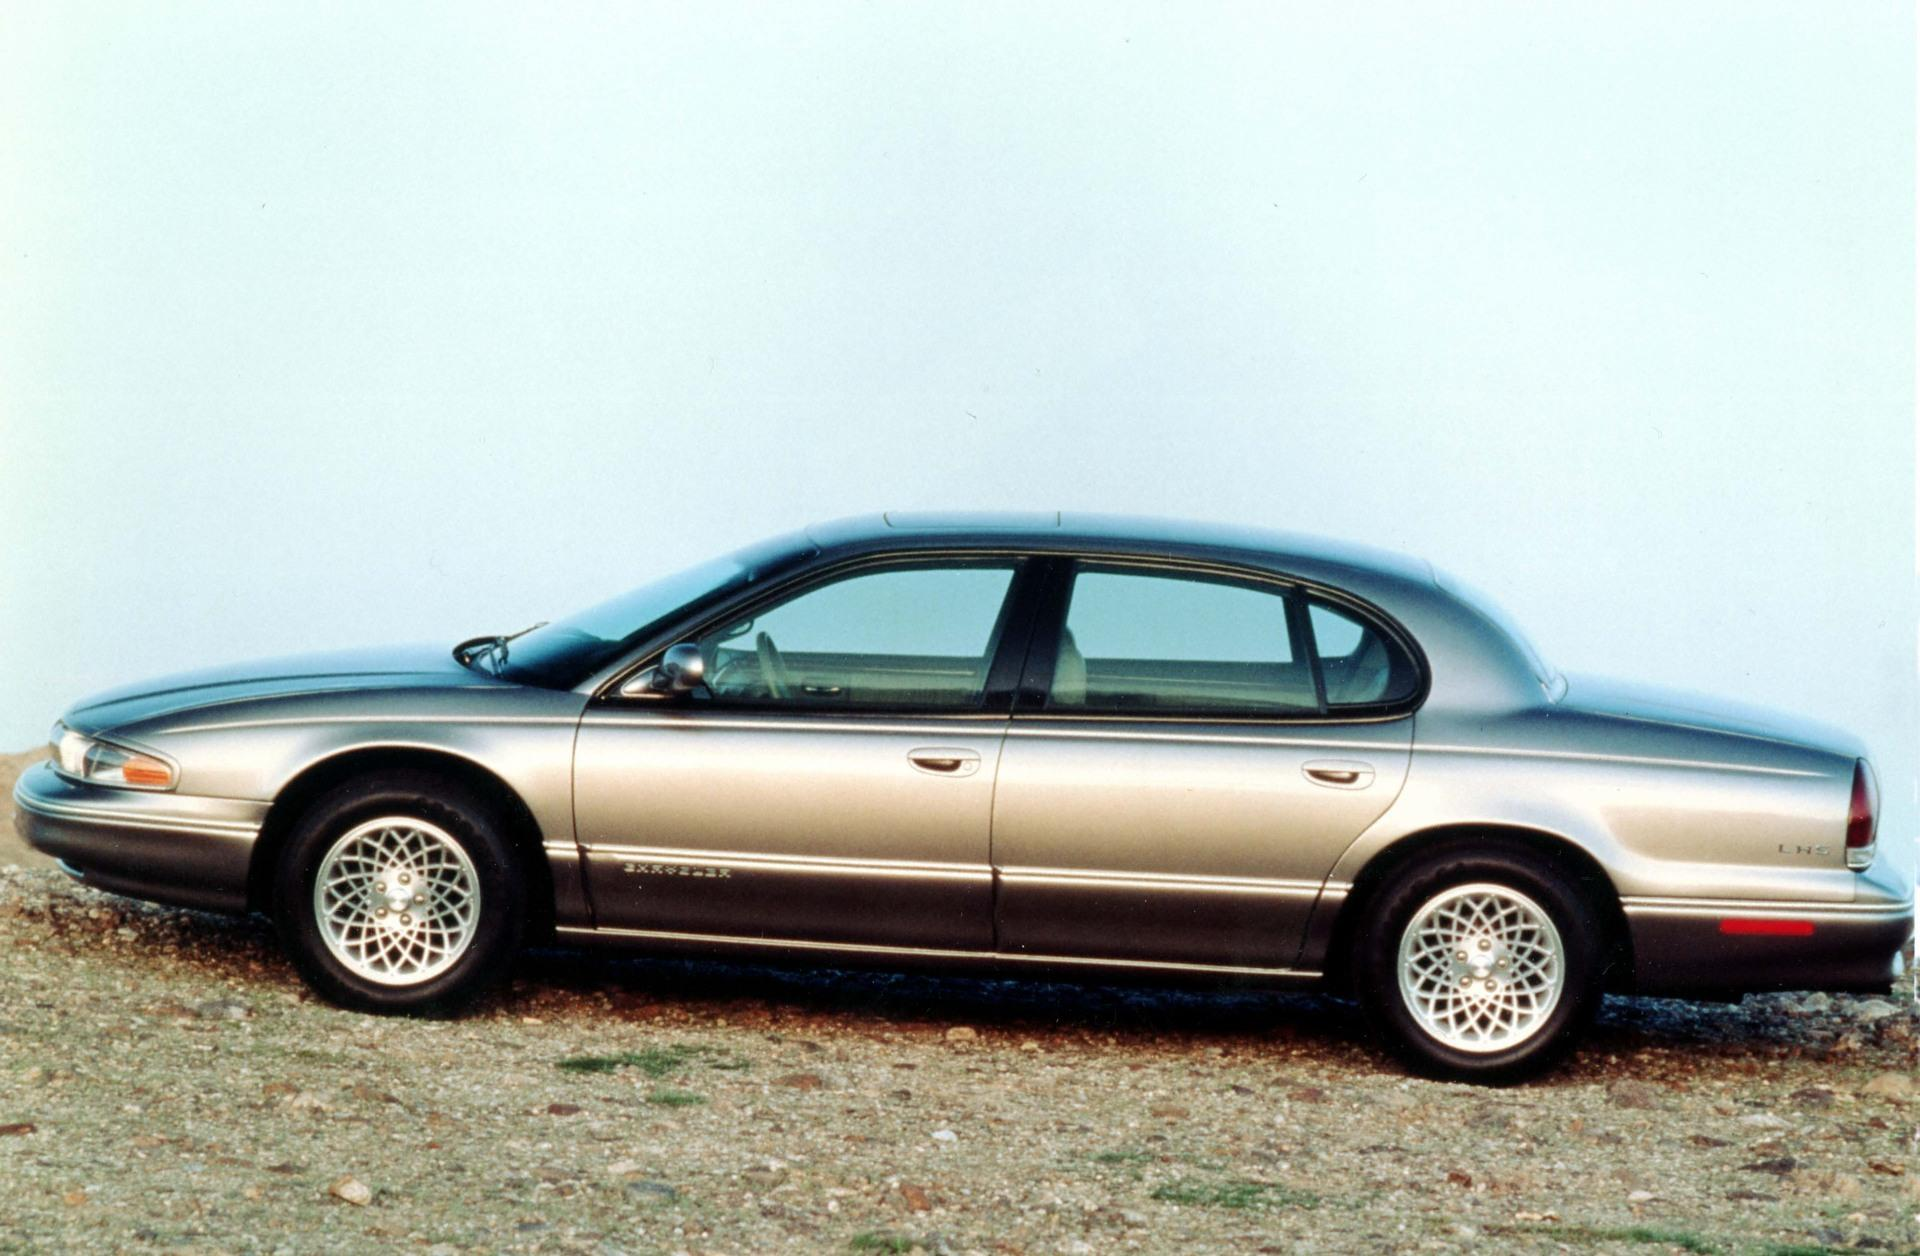 1994 Chrysler Lhs History Pictures Sales Value Research